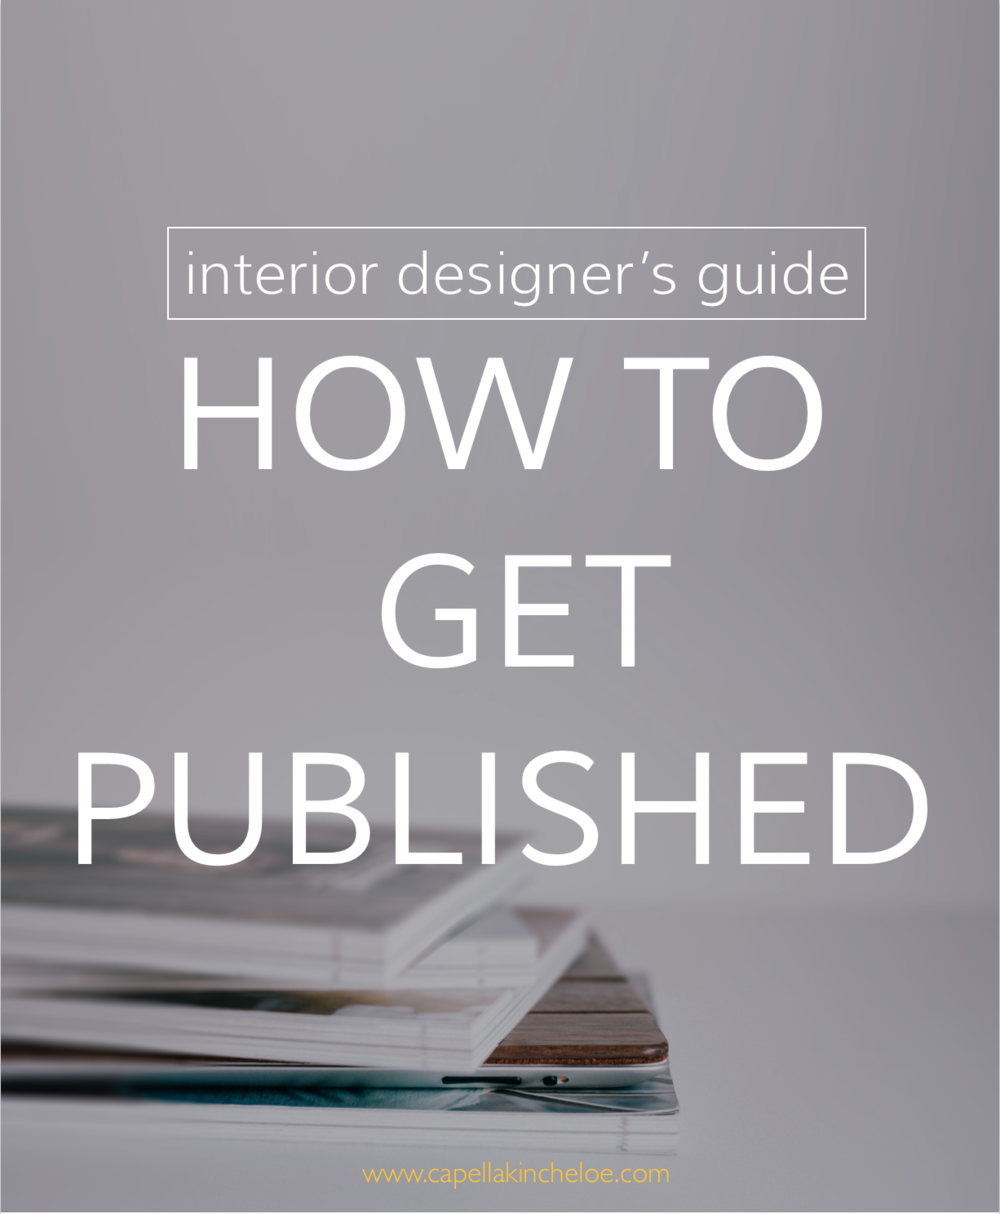 Want to know how to get your projects into shelter magazines?  Look no further than the interior designer's guide to getting published.